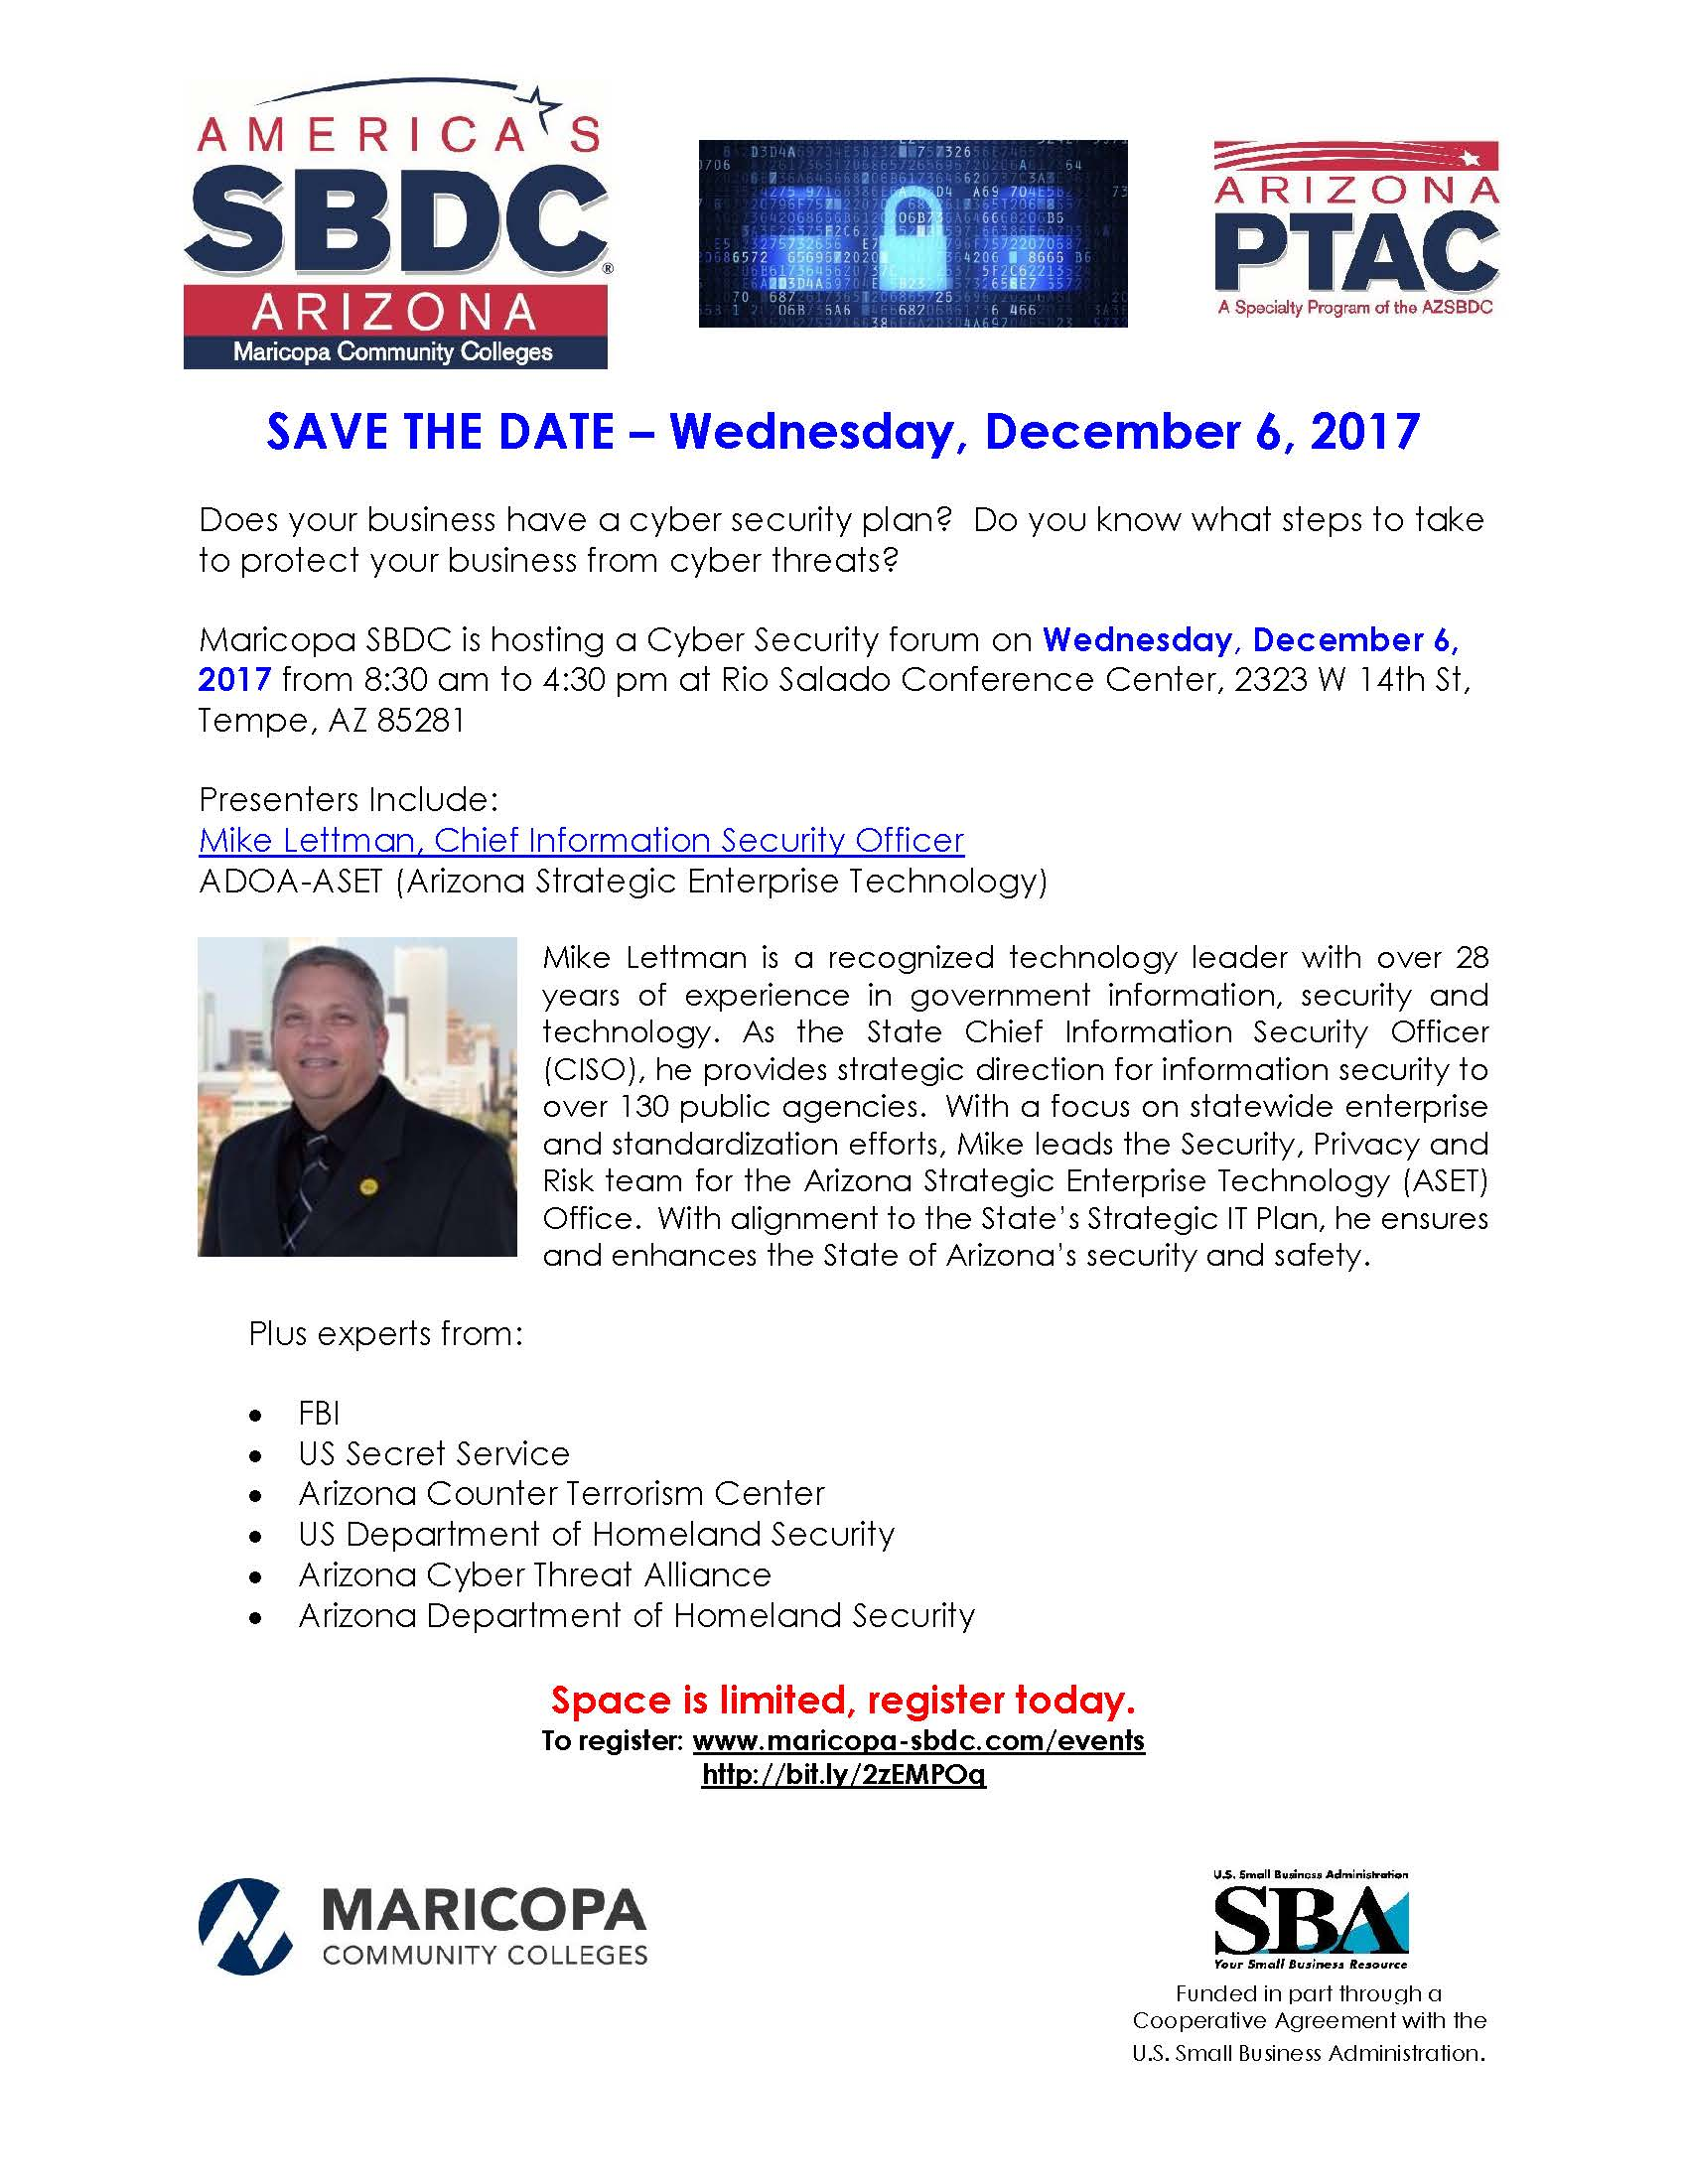 Cyber Security Forum hosted by Maricopa SBDC